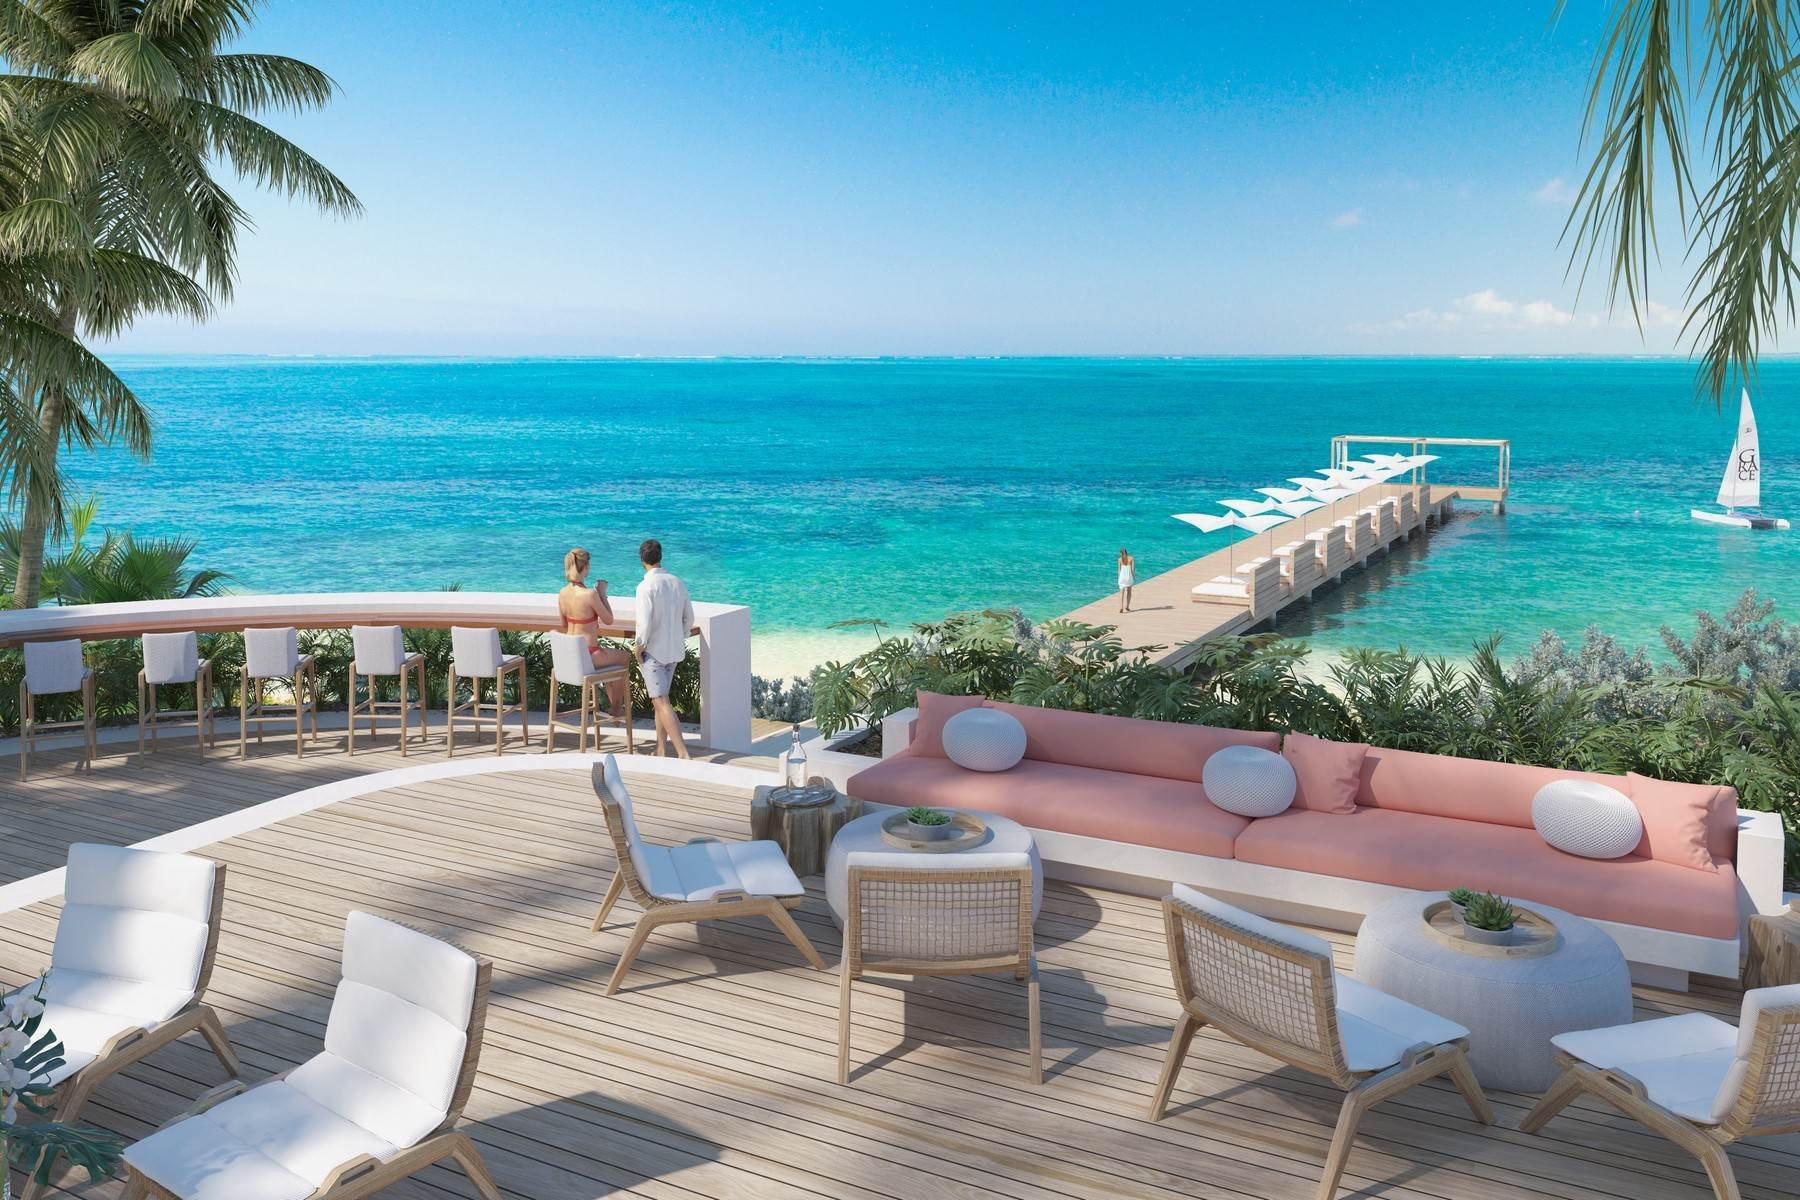 5. Condominiums for Sale at Rock House Two Bedroom Oceanfront Home Rock House Resort, International Drive Blue Mountain, Providenciales TKCA 1ZZ Turks And Caicos Islands